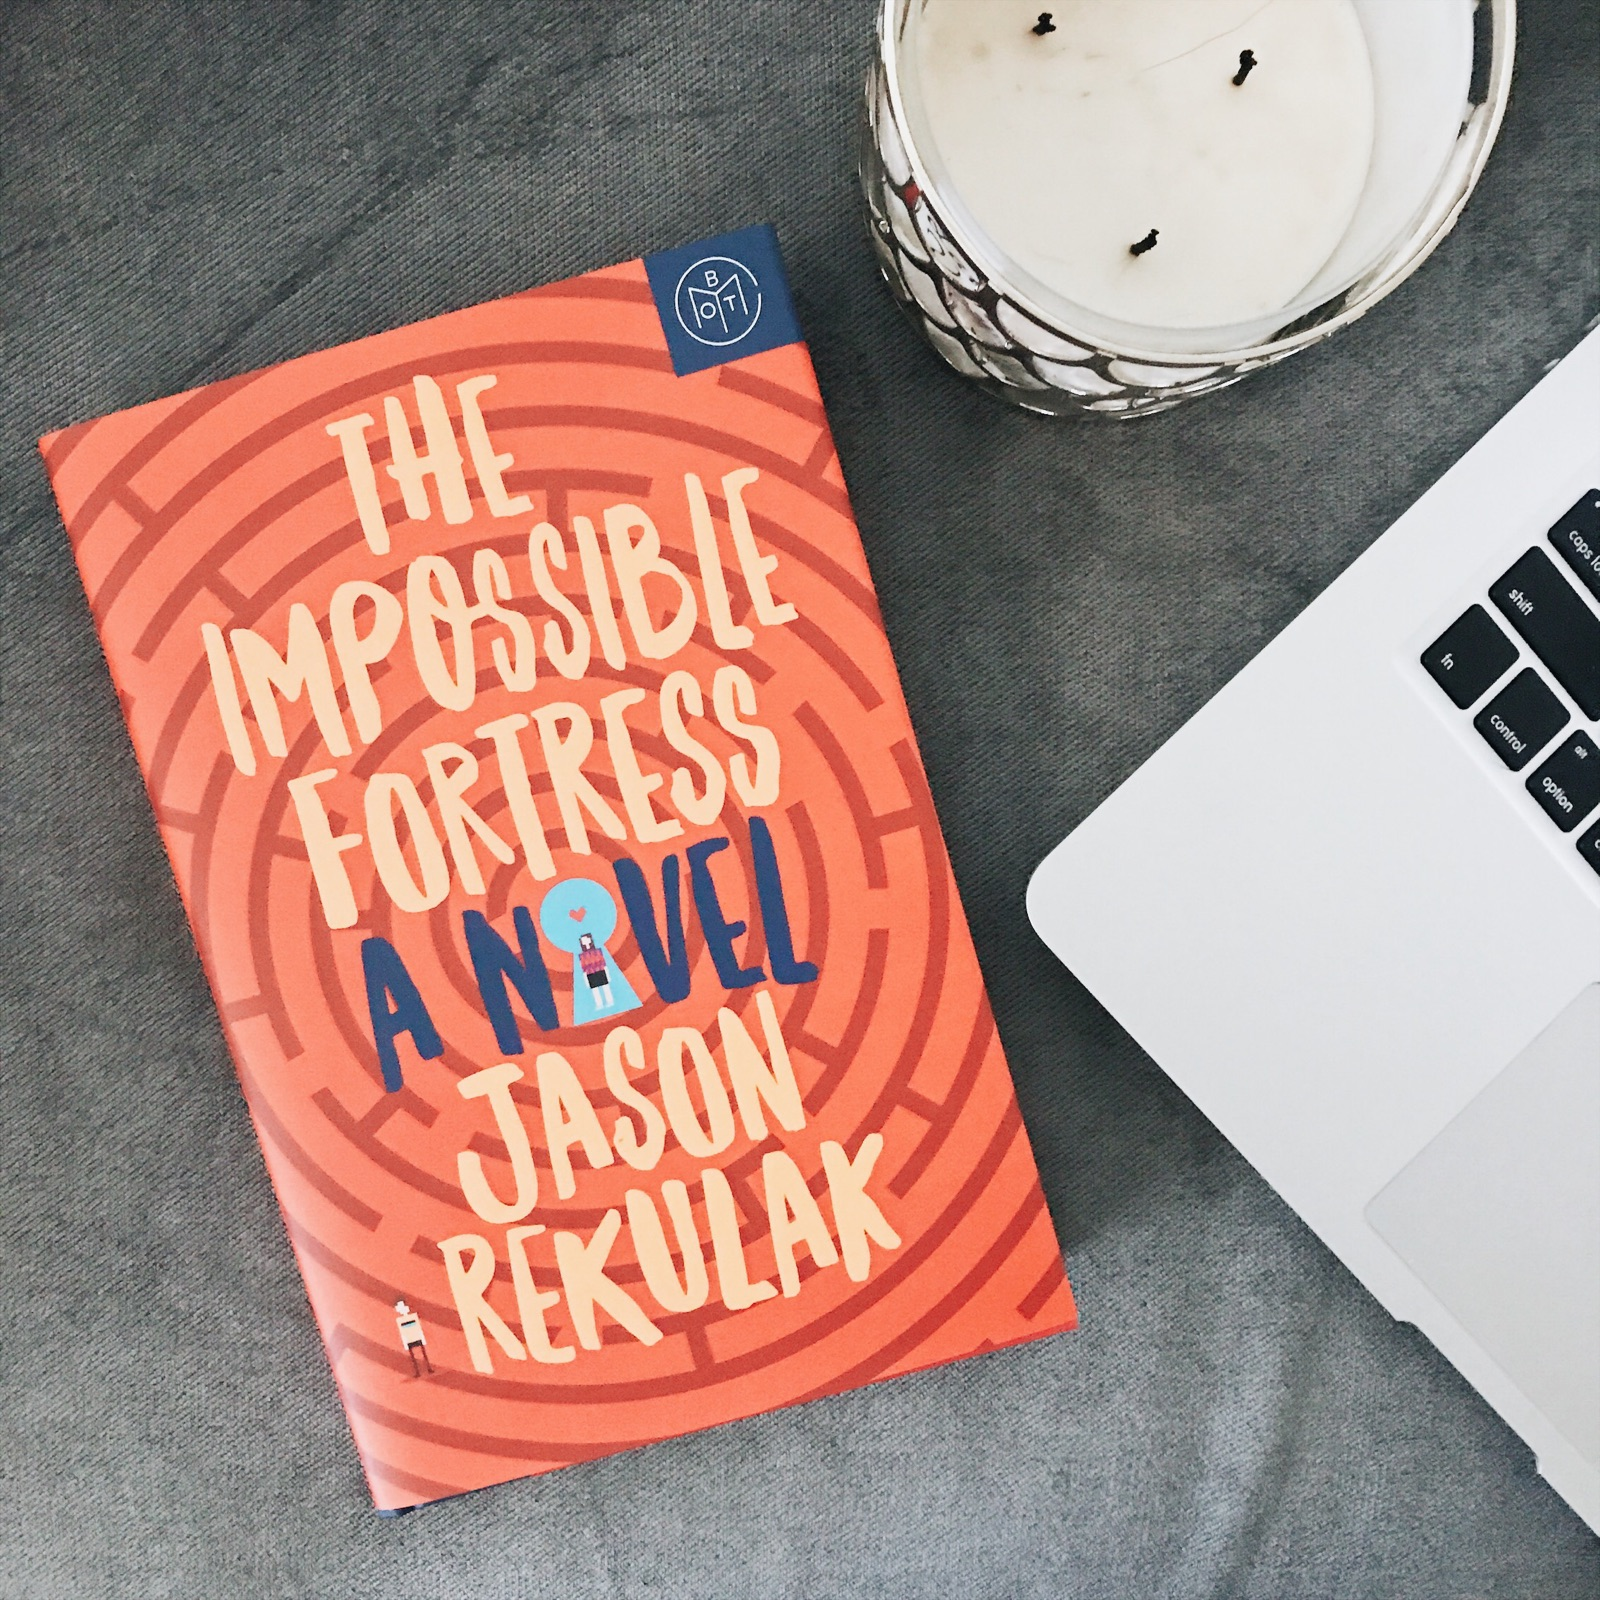 Book Review: The Impossible Fortress by Jason Rekulak The Cozie